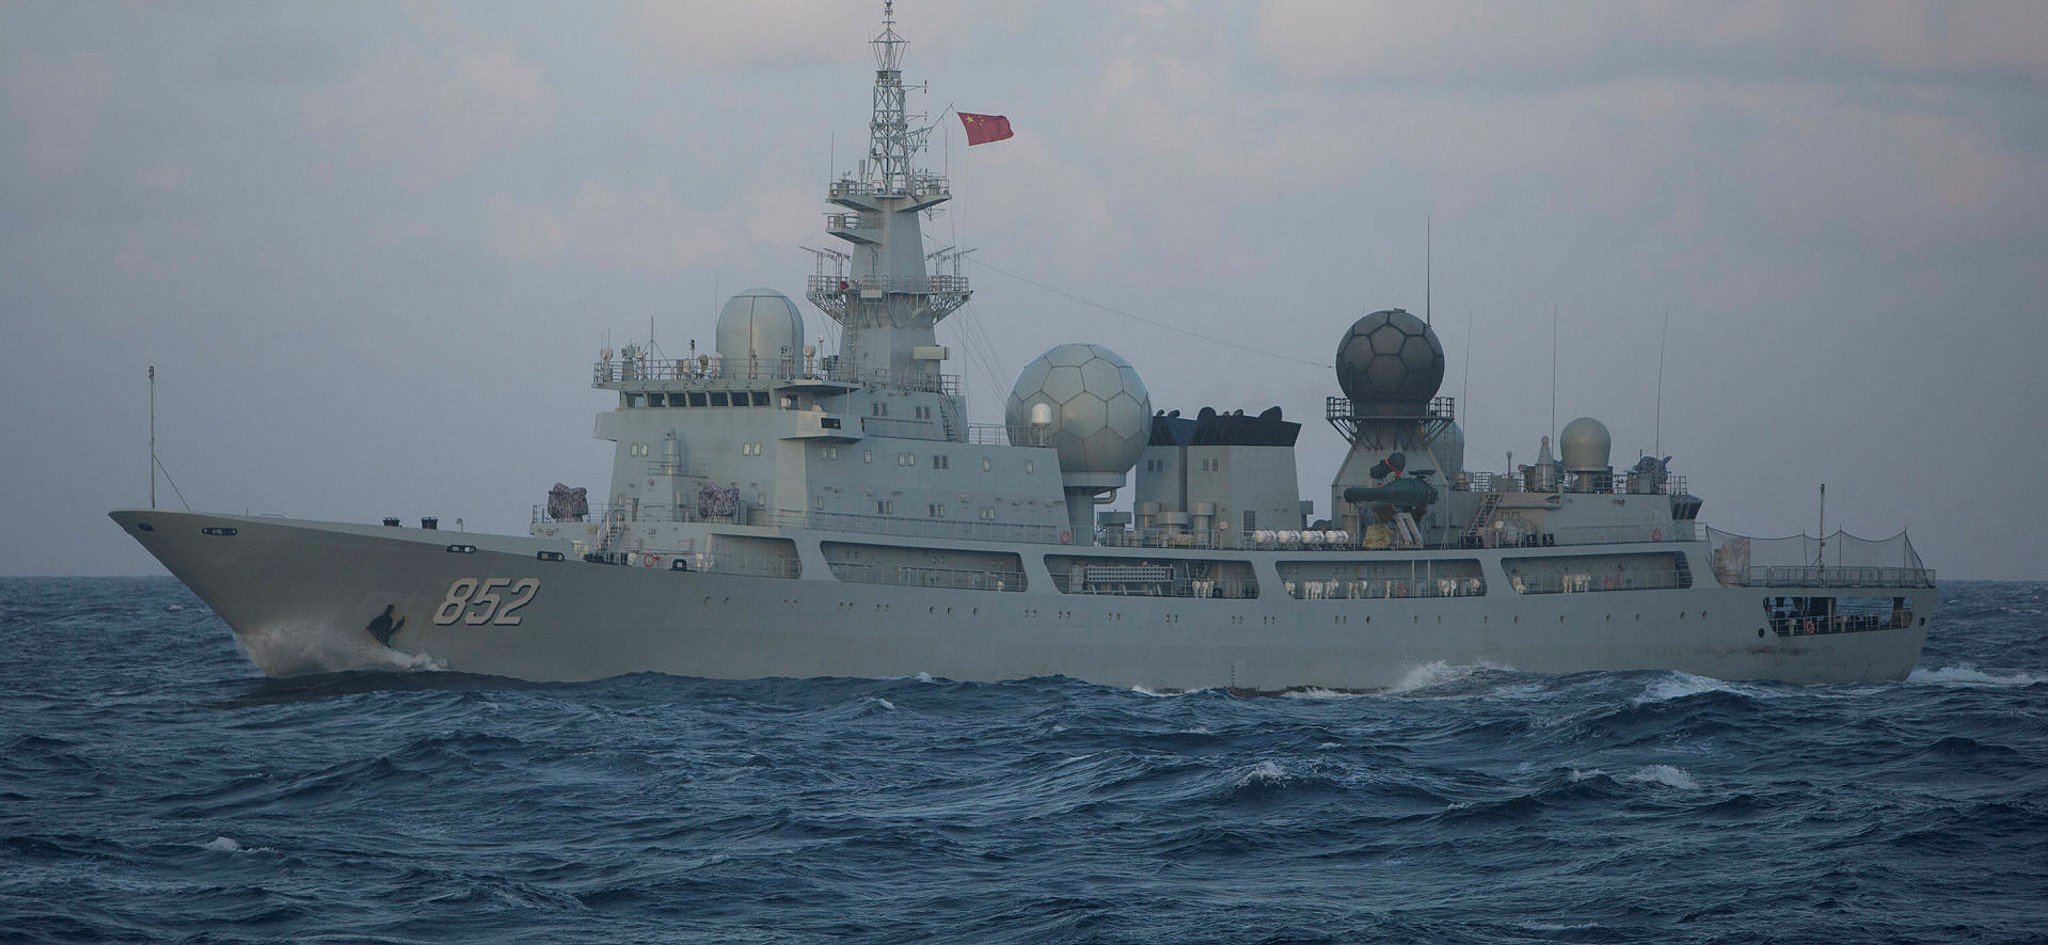 The PLA-N Type 815 Dongdiao-class AIG vessel ship operating in the vicinity of Exercise Talisman Sabre. (Photo: Australian Defence)